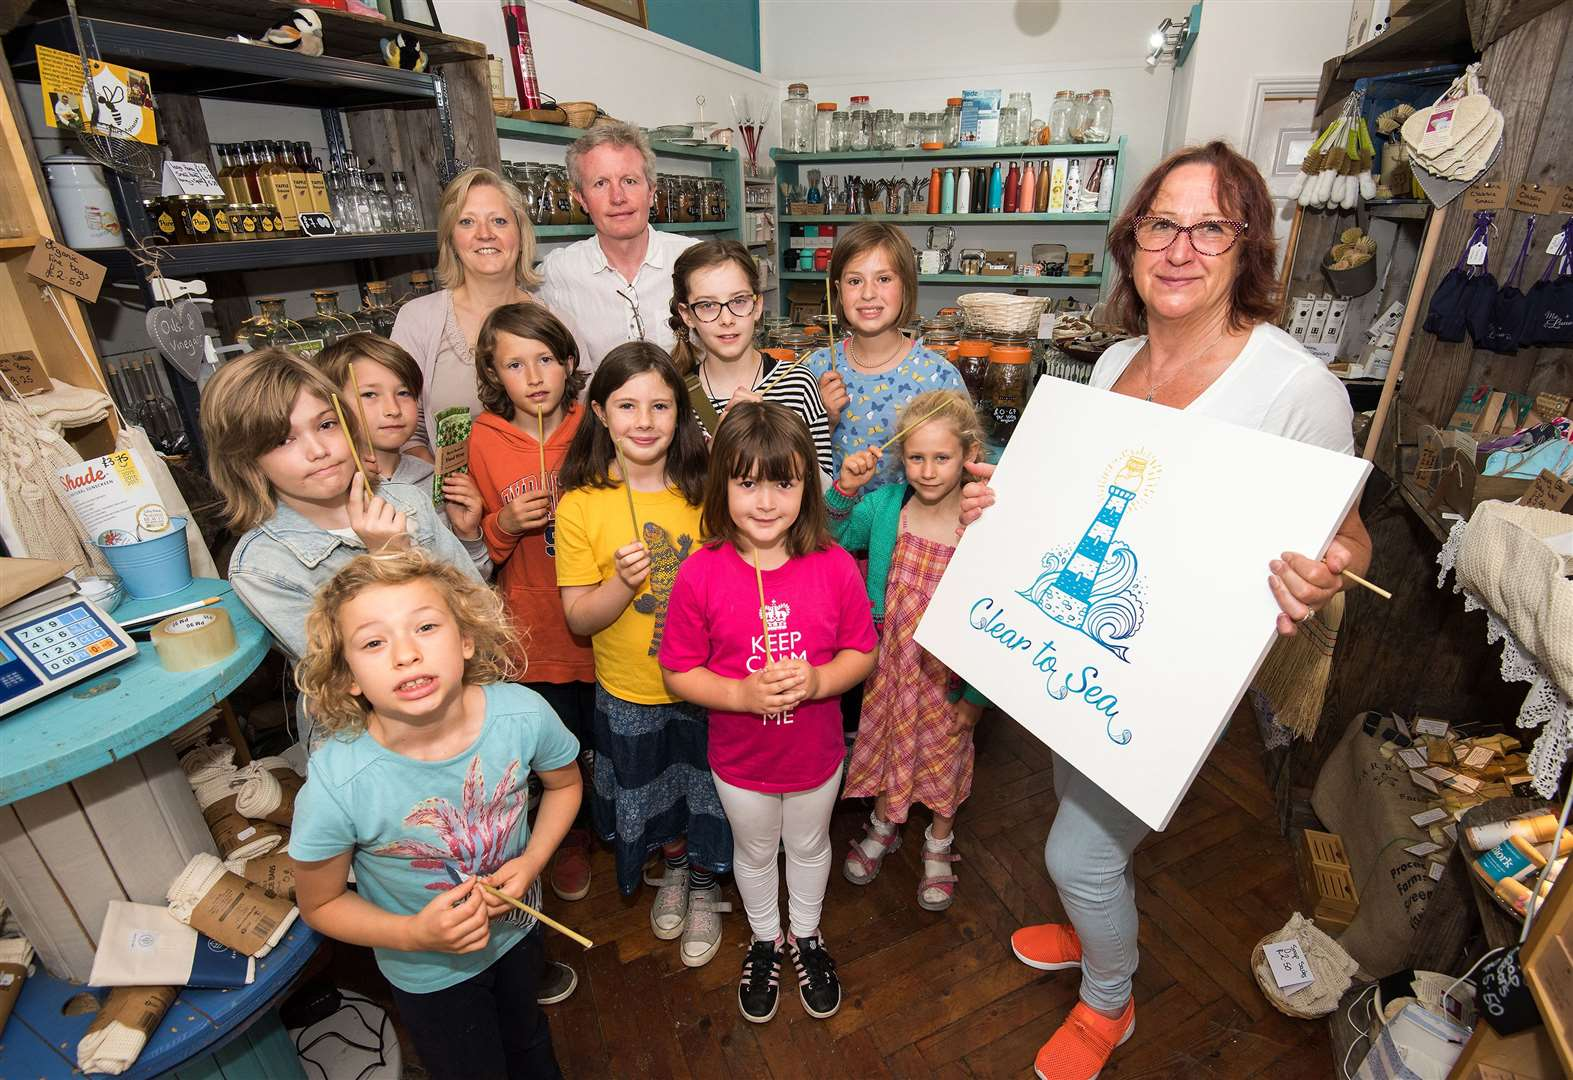 Bury St Edmunds shop Clear to Sea hosts visit from children from the Creative Education Centre in Fornham All Saints